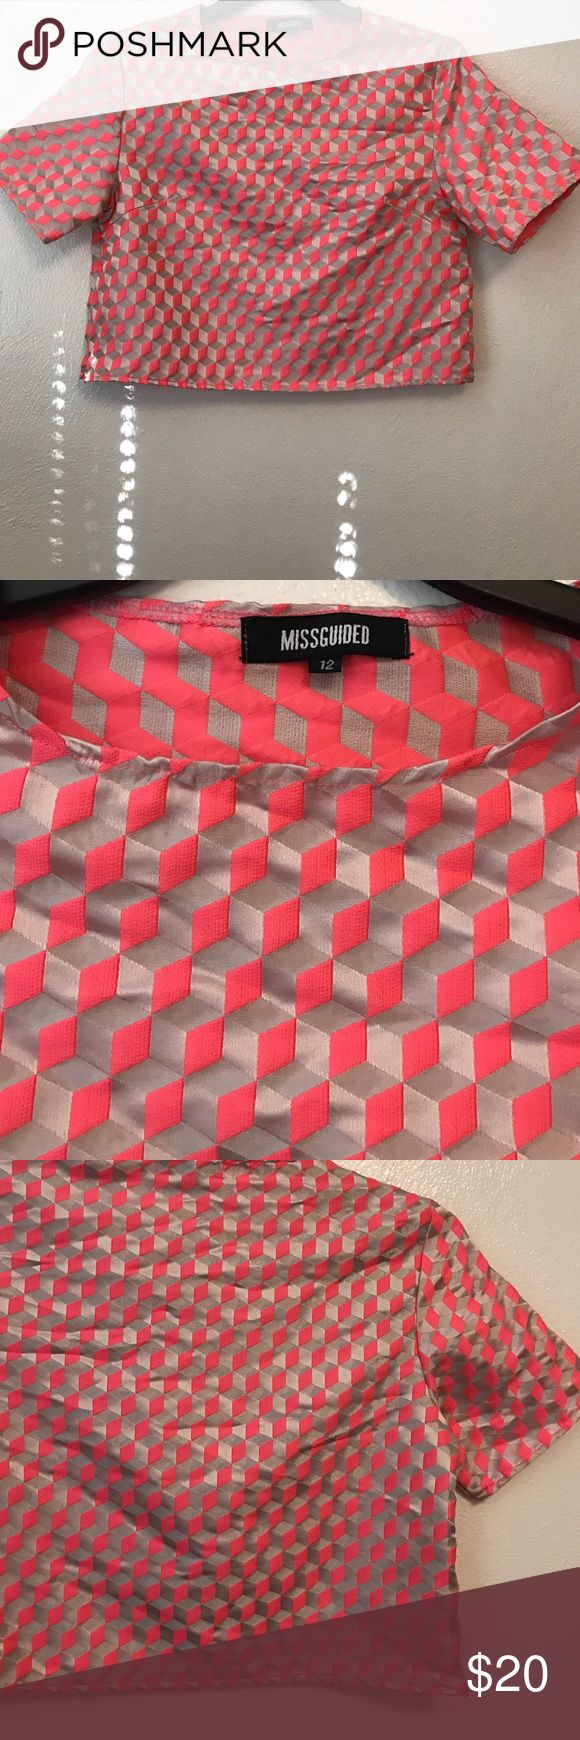 MissGuided Top MissGuided | Top | Pink Pattern | 12 | Missguided Tops Tees - Short Sleeve